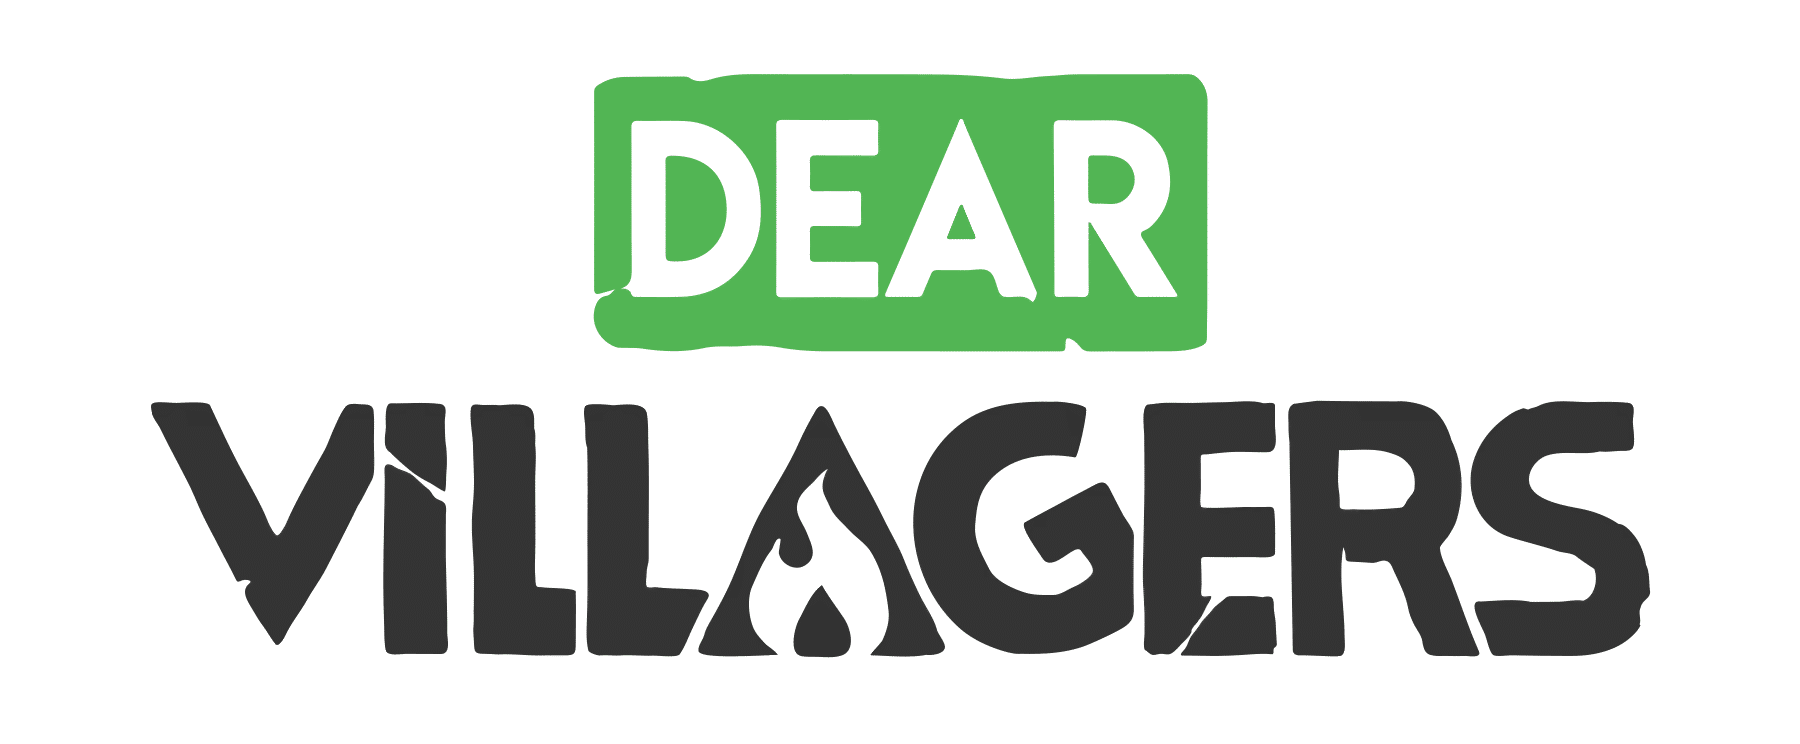 Dear Villagers - Video games publisher